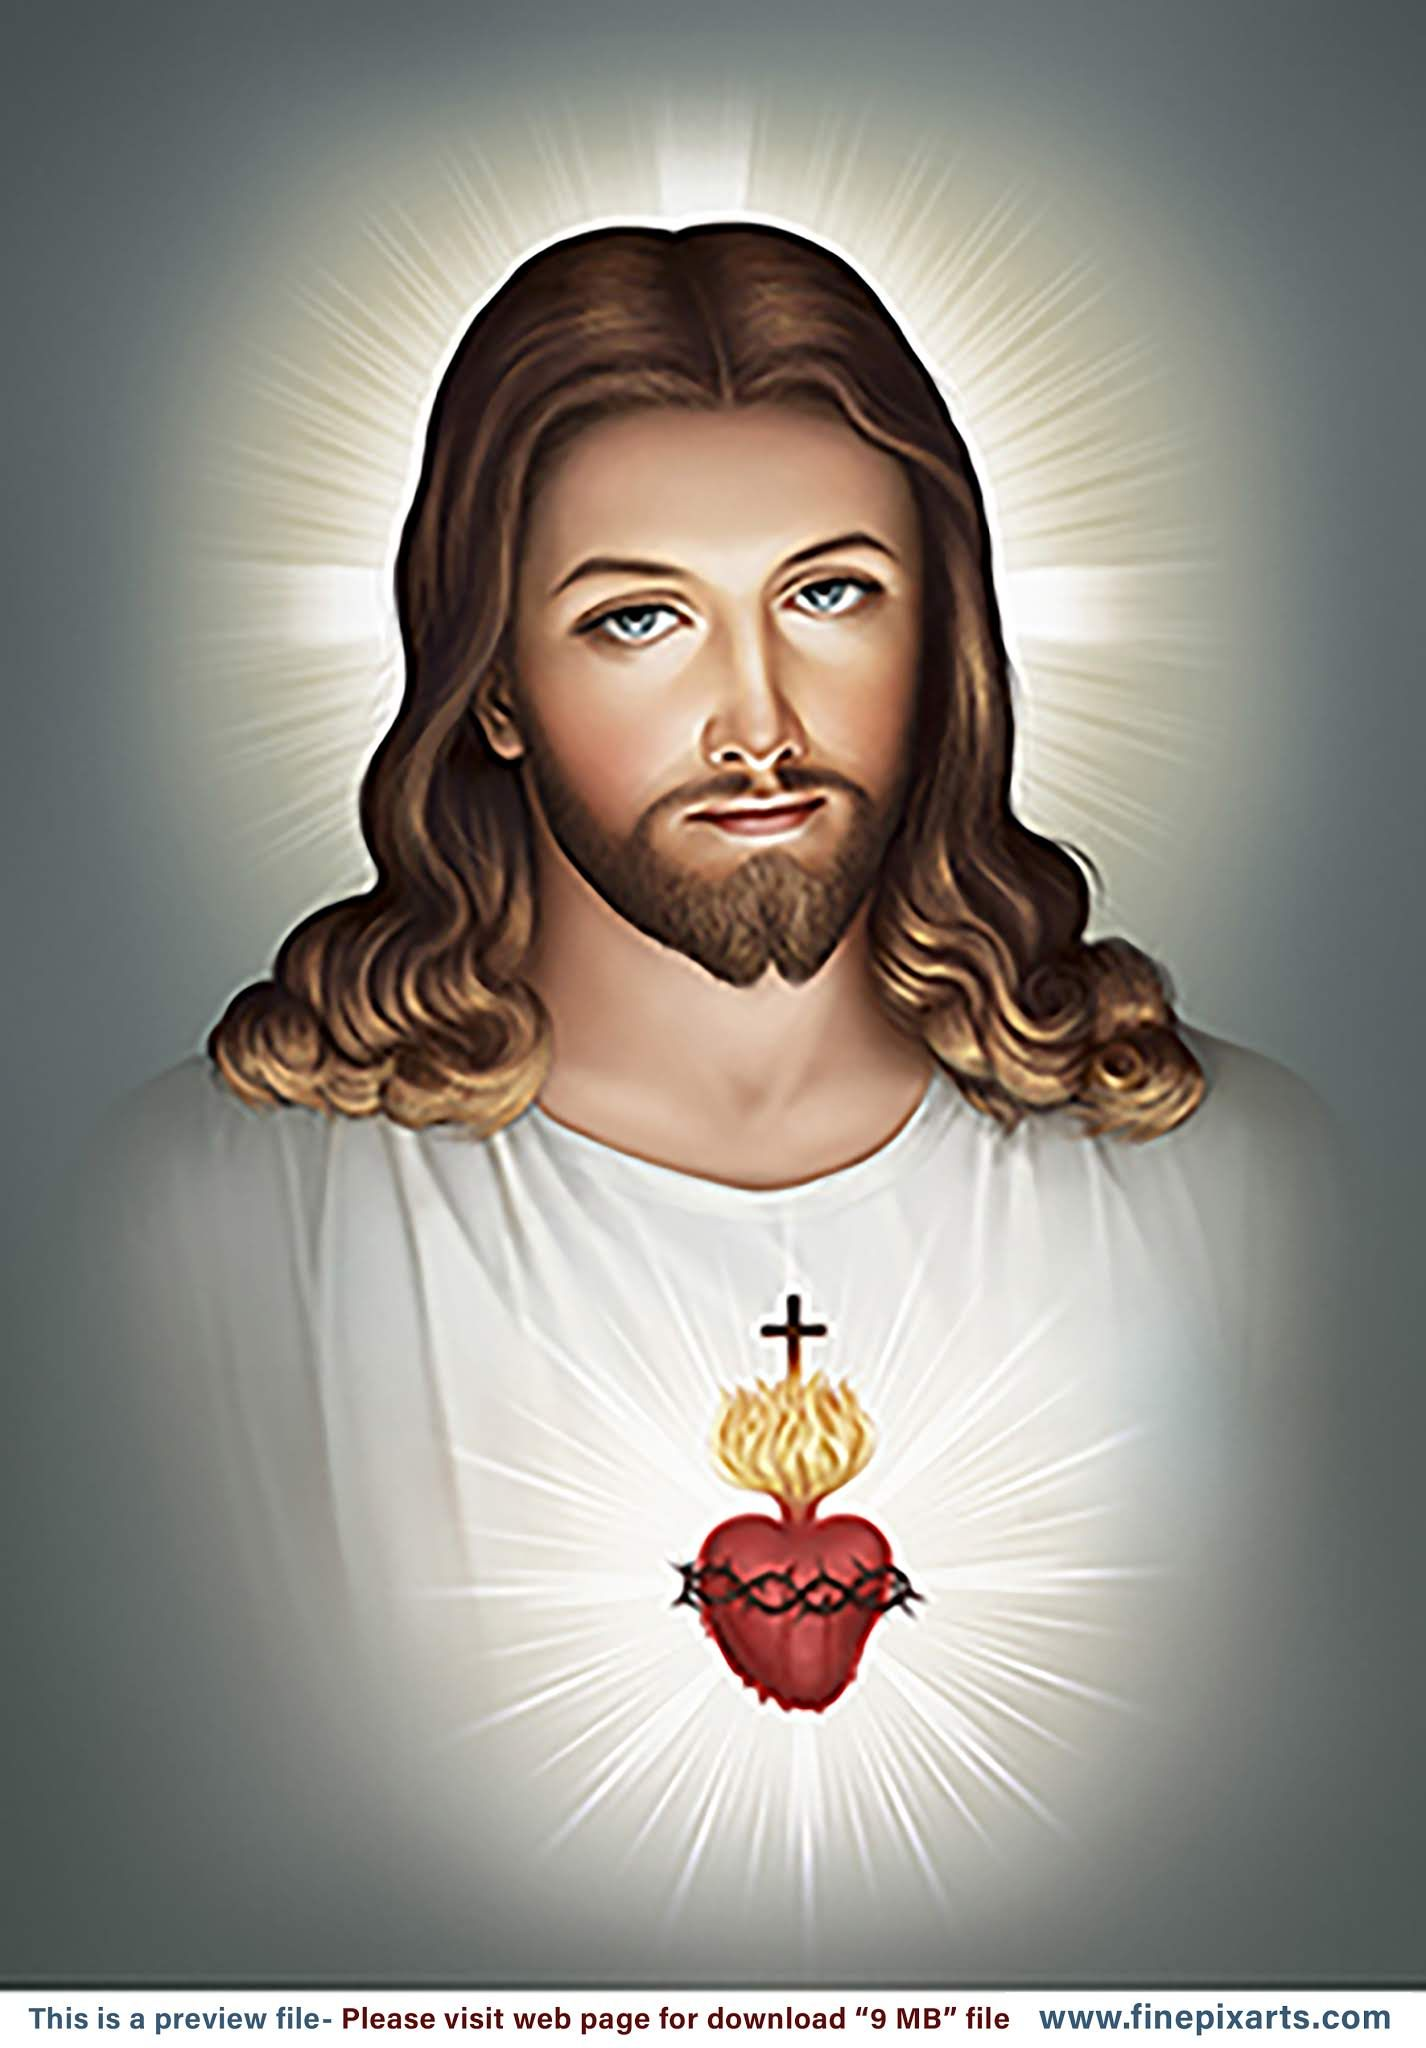 Sacred Heart Of Jesus In 2020 Jesus Christ Painting Jesus Christ Images Jesus Pictures